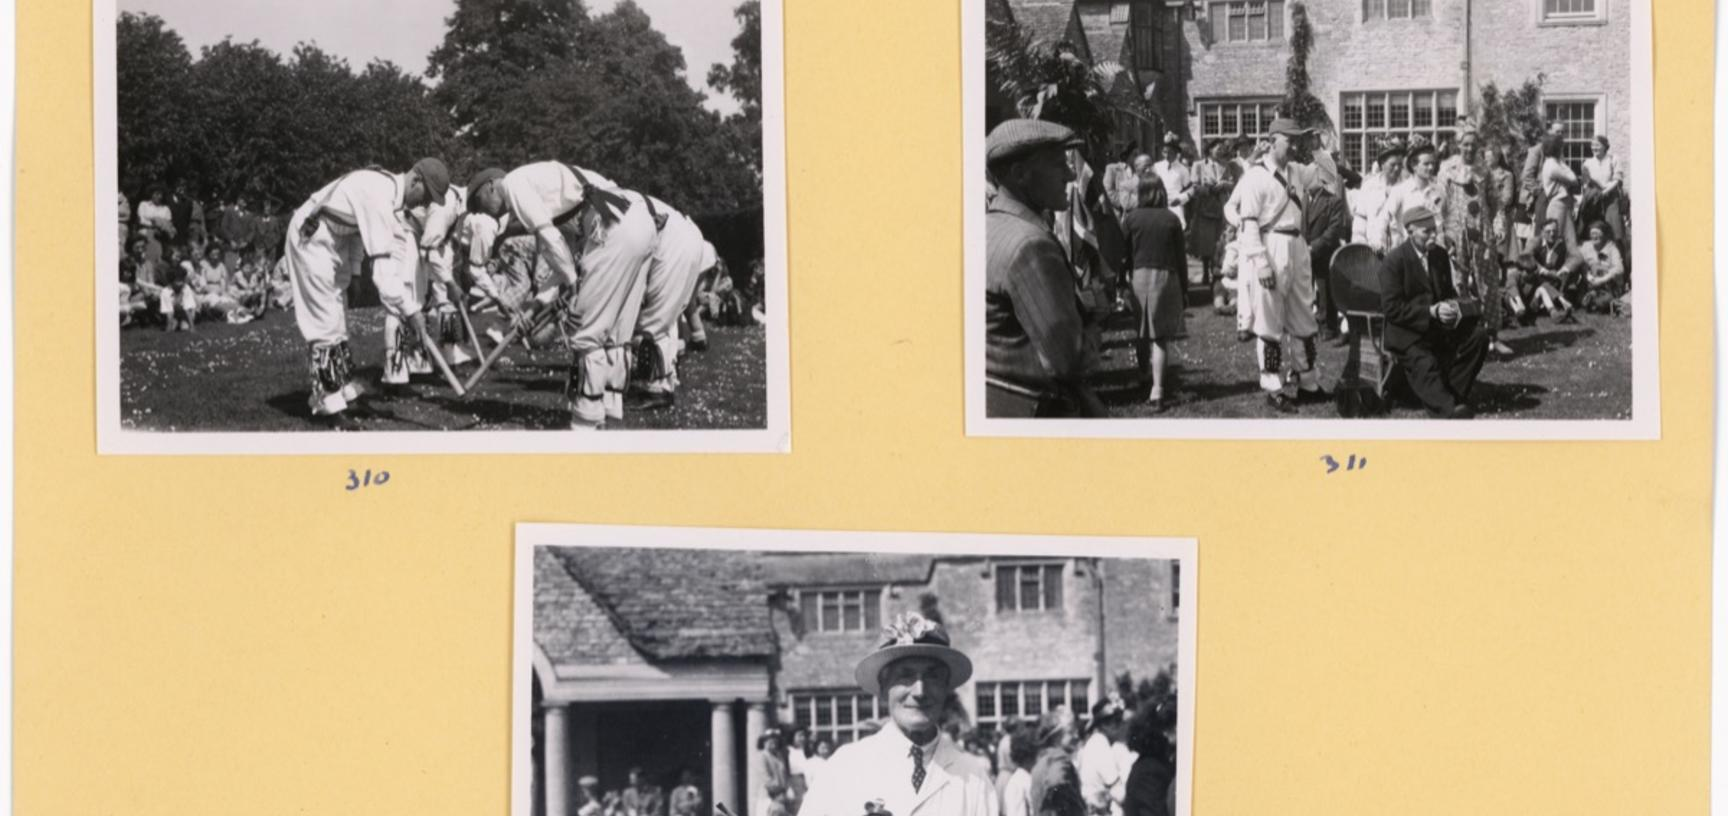 'The Morrisdancers at Bampton' (typed caption). Photographs by Ellen Ettlinger. Bampton, Oxfordshire, England. 1949.